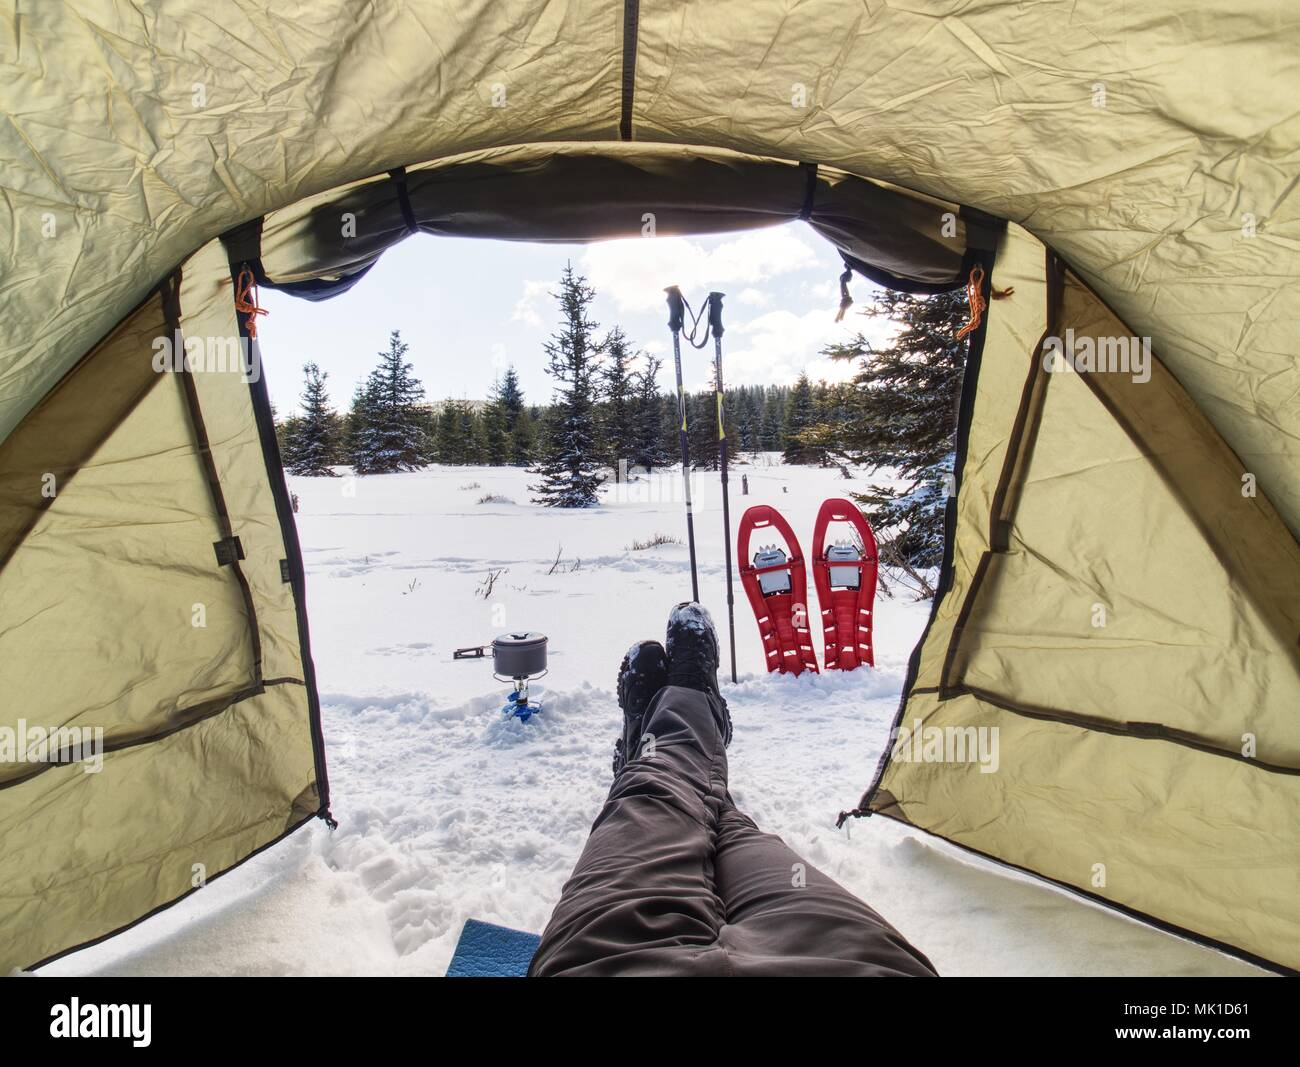 expedition stockfotos expedition bilder alamy. Black Bedroom Furniture Sets. Home Design Ideas